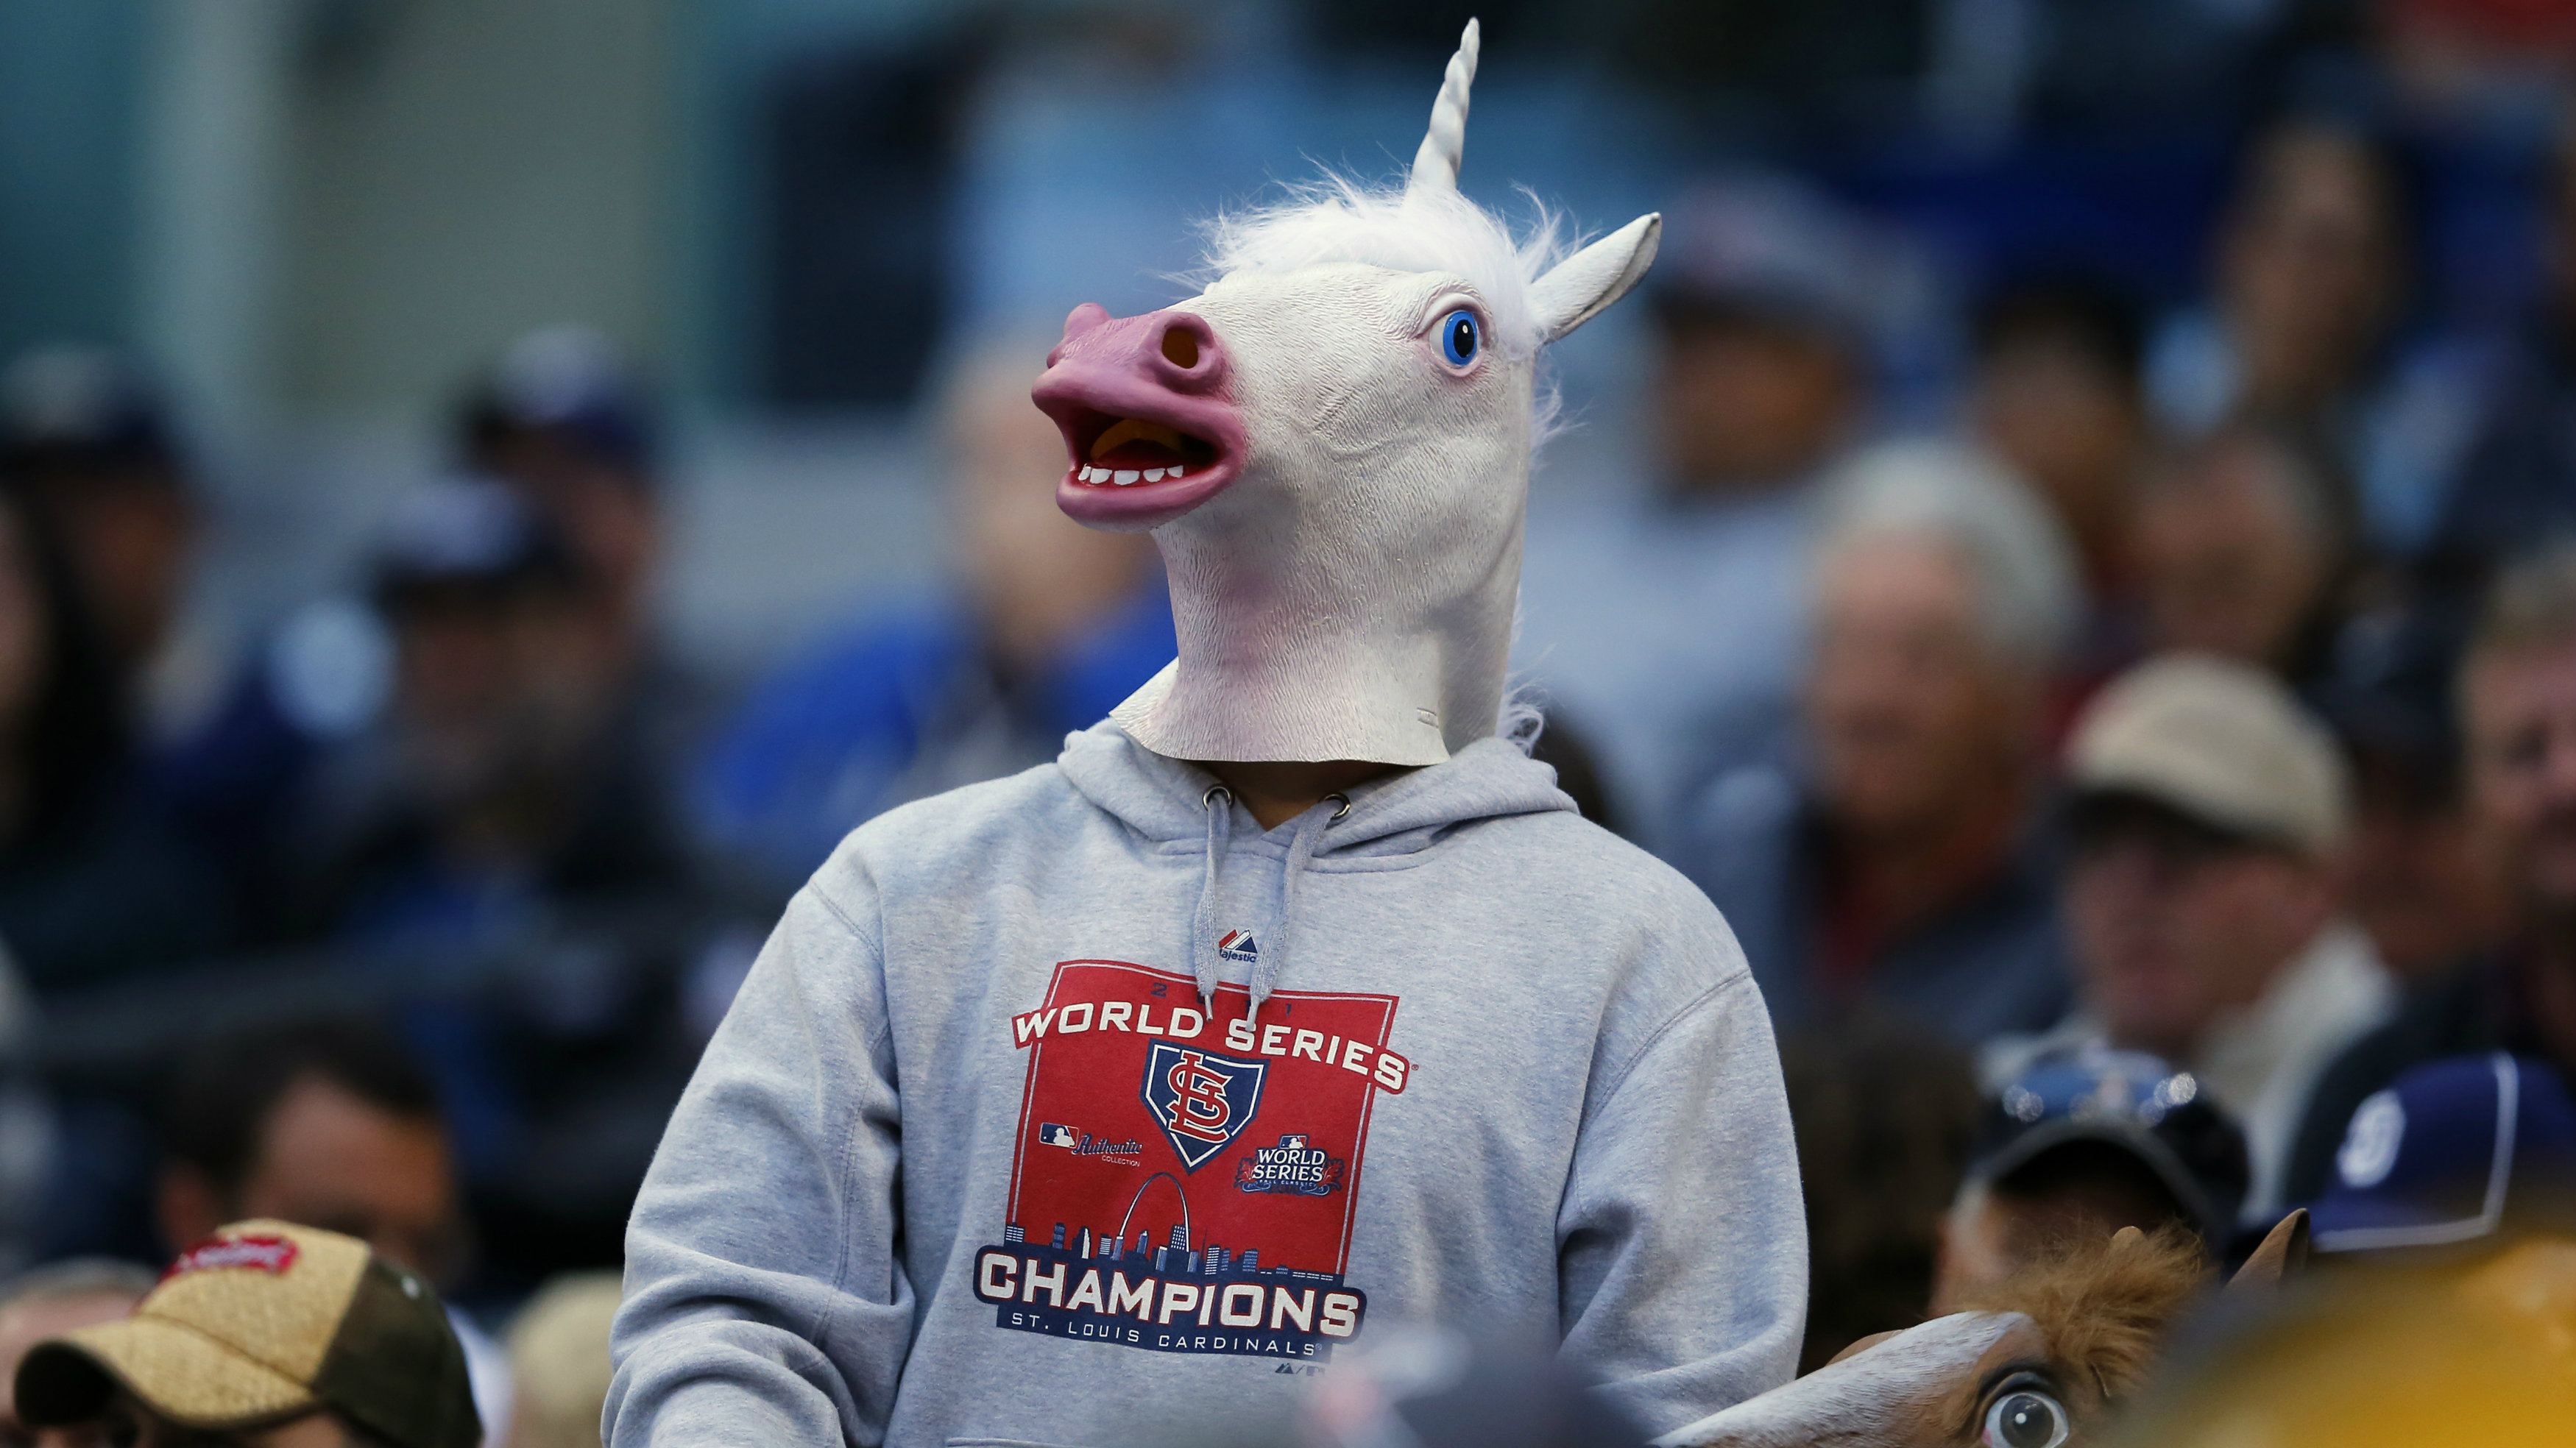 A baseball fan wearing a unicorn mask attends an Interleague MLB game between the San Diego Padres and the Toronto Blue Jays in San Diego, California June 2, 2013.